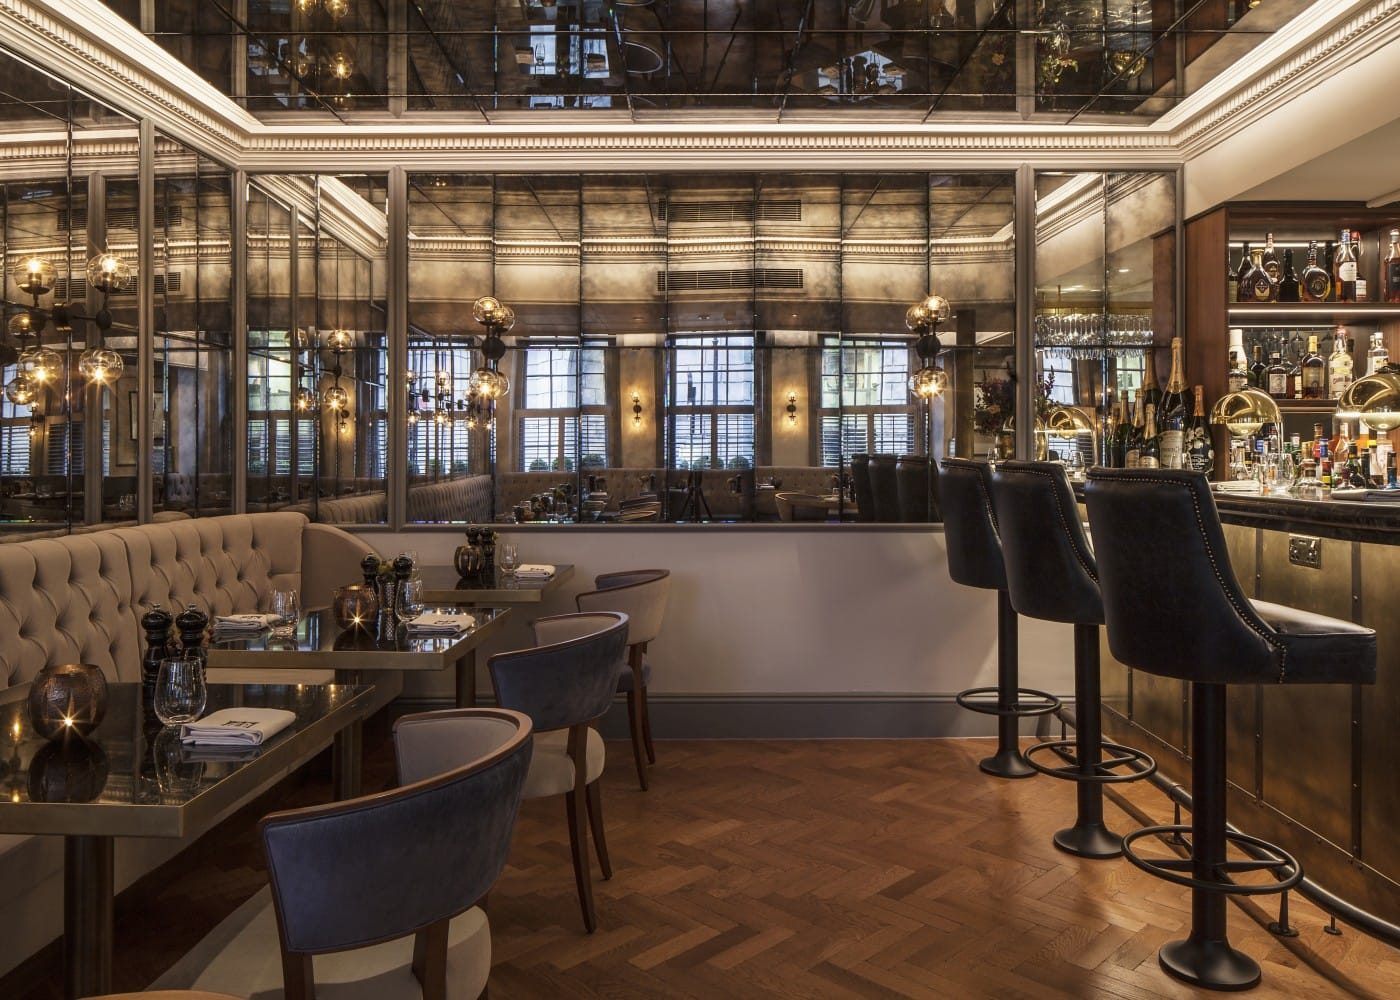 hospitality lighting design at Dukes